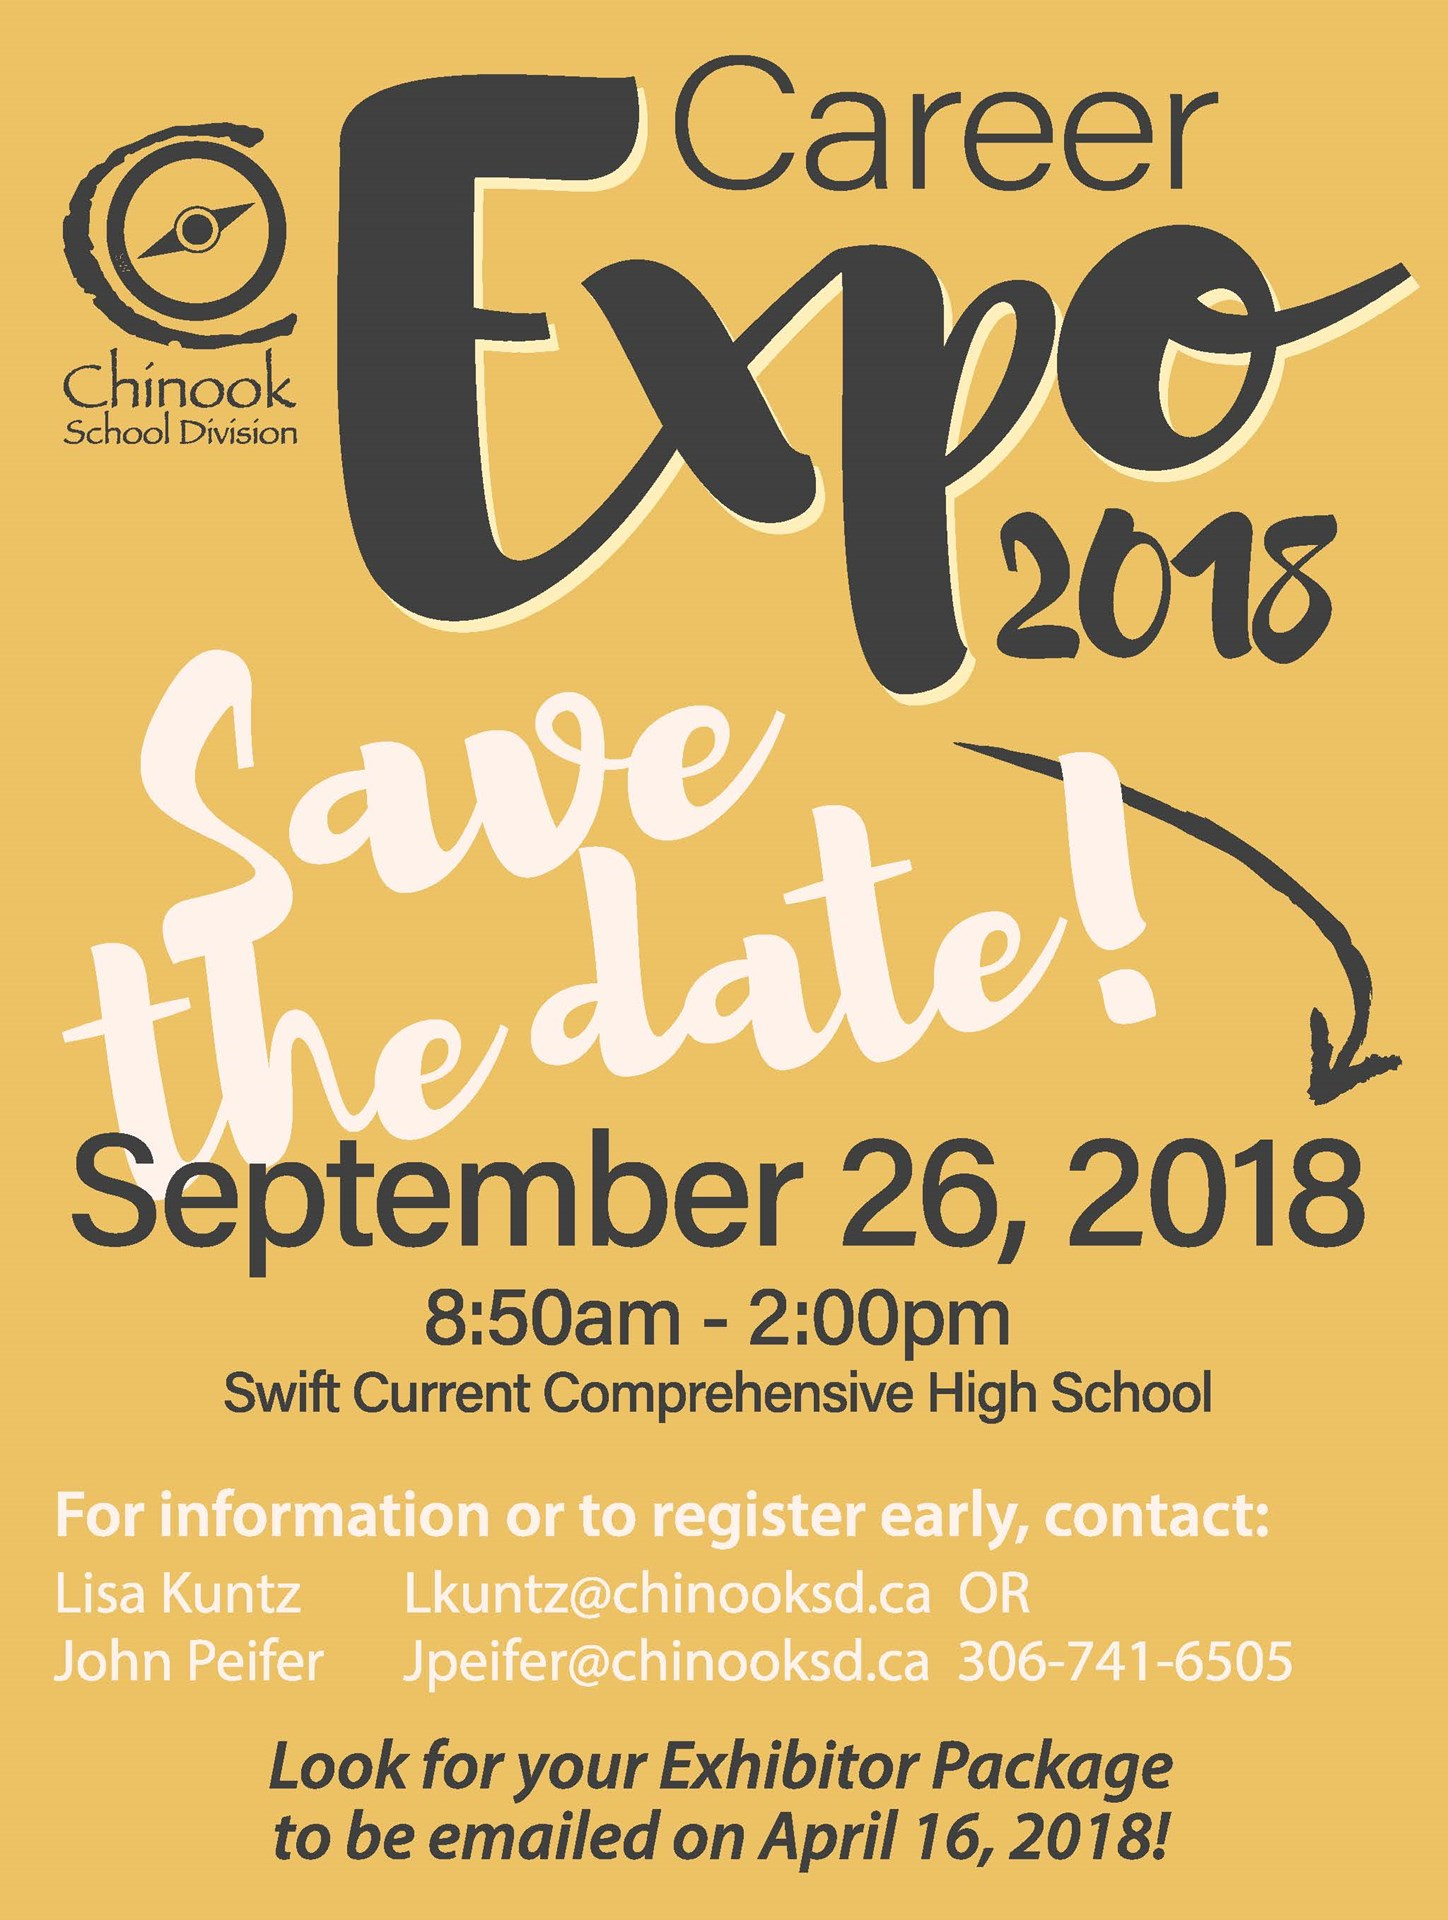 Career Expo 2018 Vendors-Save the Date (2).jpg